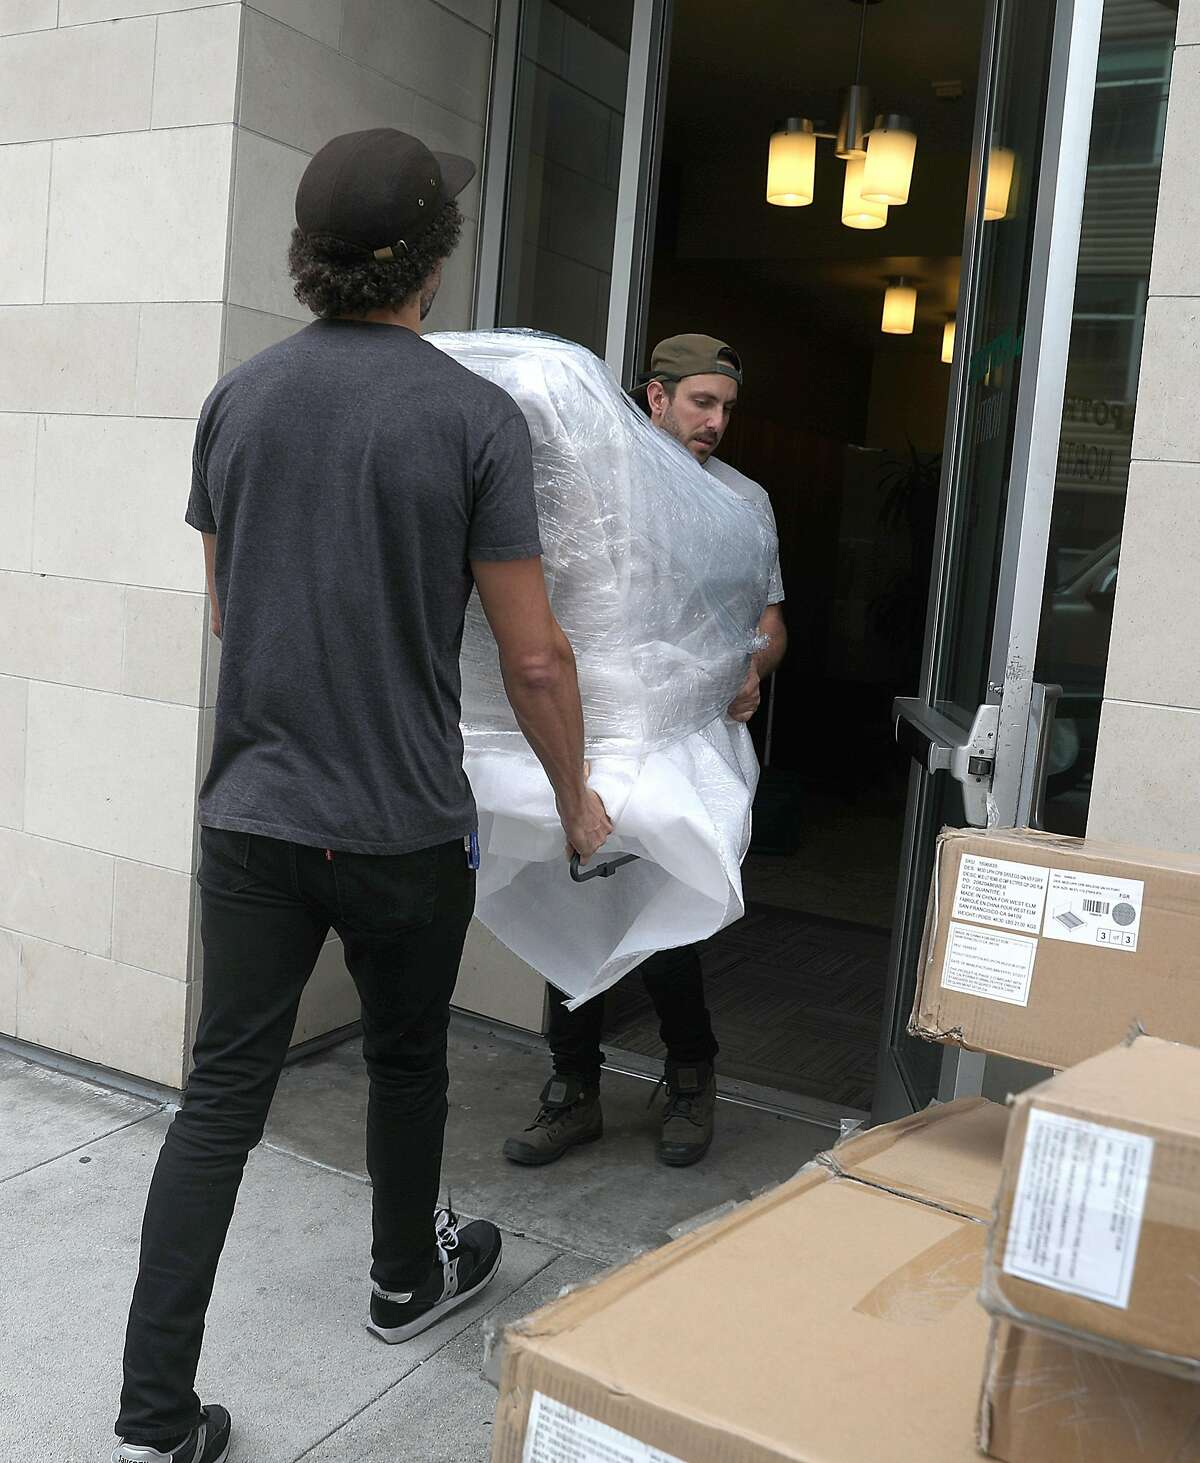 Delivery leads Chris Ledet (left) and Jake Gonen (middle) move household furniture from Feather to an apartment on Kansas St. on Thursday, Aug. 23, 2018 in San Francisco, Calif. SF startup Feather rents household furniture to people on a subscription plan.